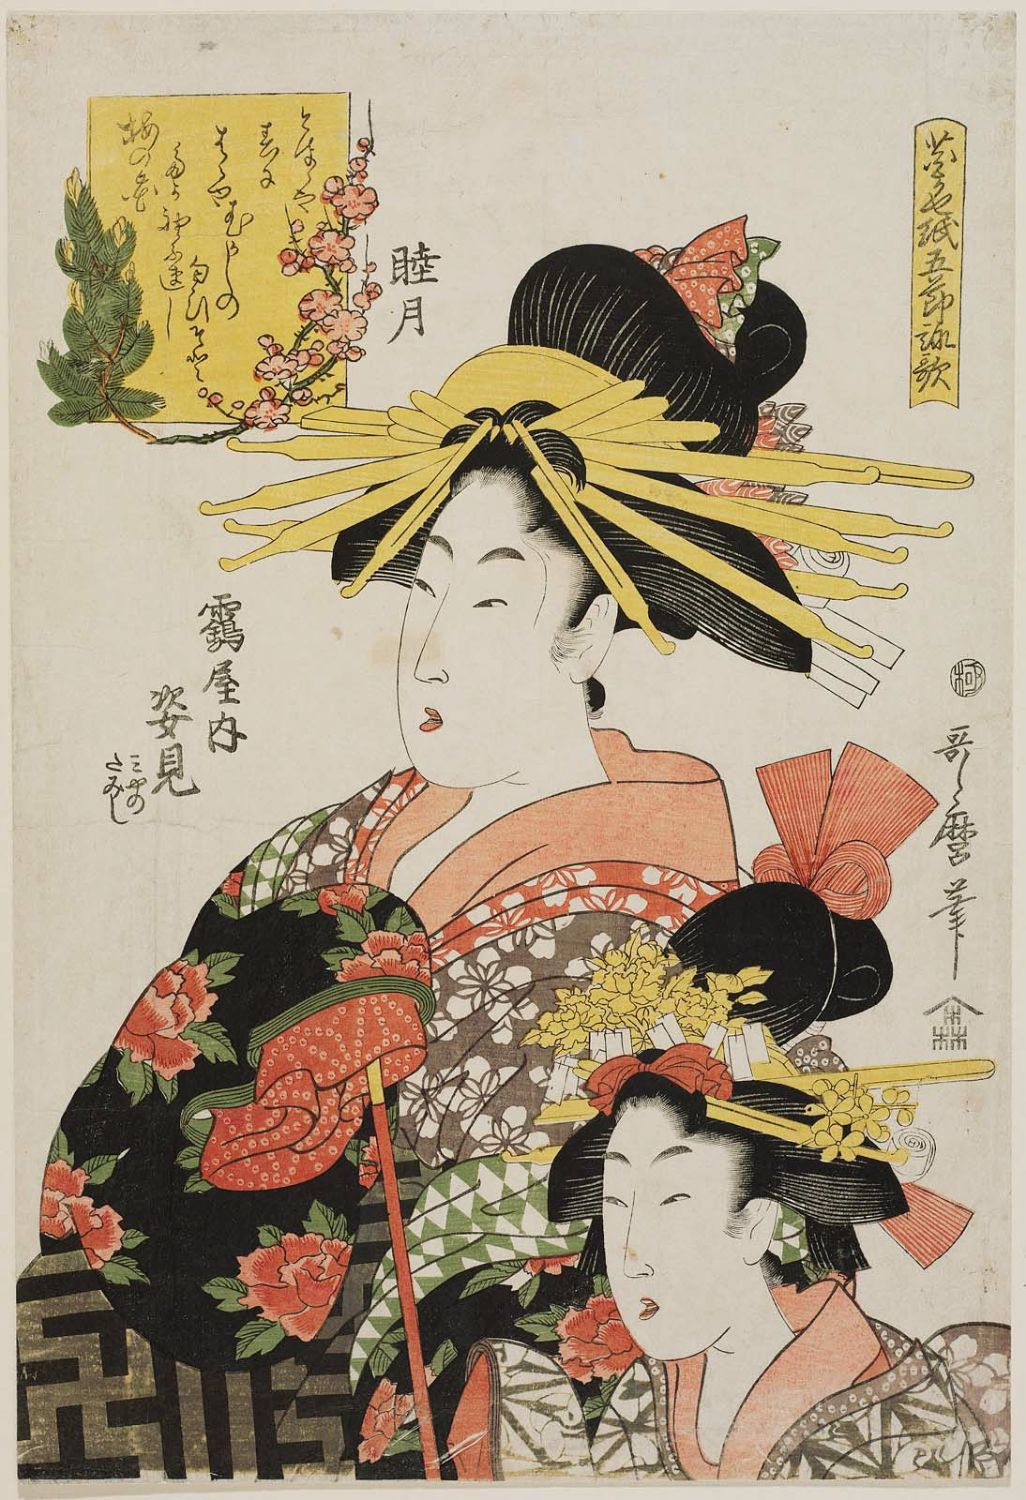 essays on kitagawa utamaro 6 results  the passionate art of kitagawa utamaro (2 volume set)  utamaro illustrating  the process of silk culture with introductory essay by jack hillier 1965.